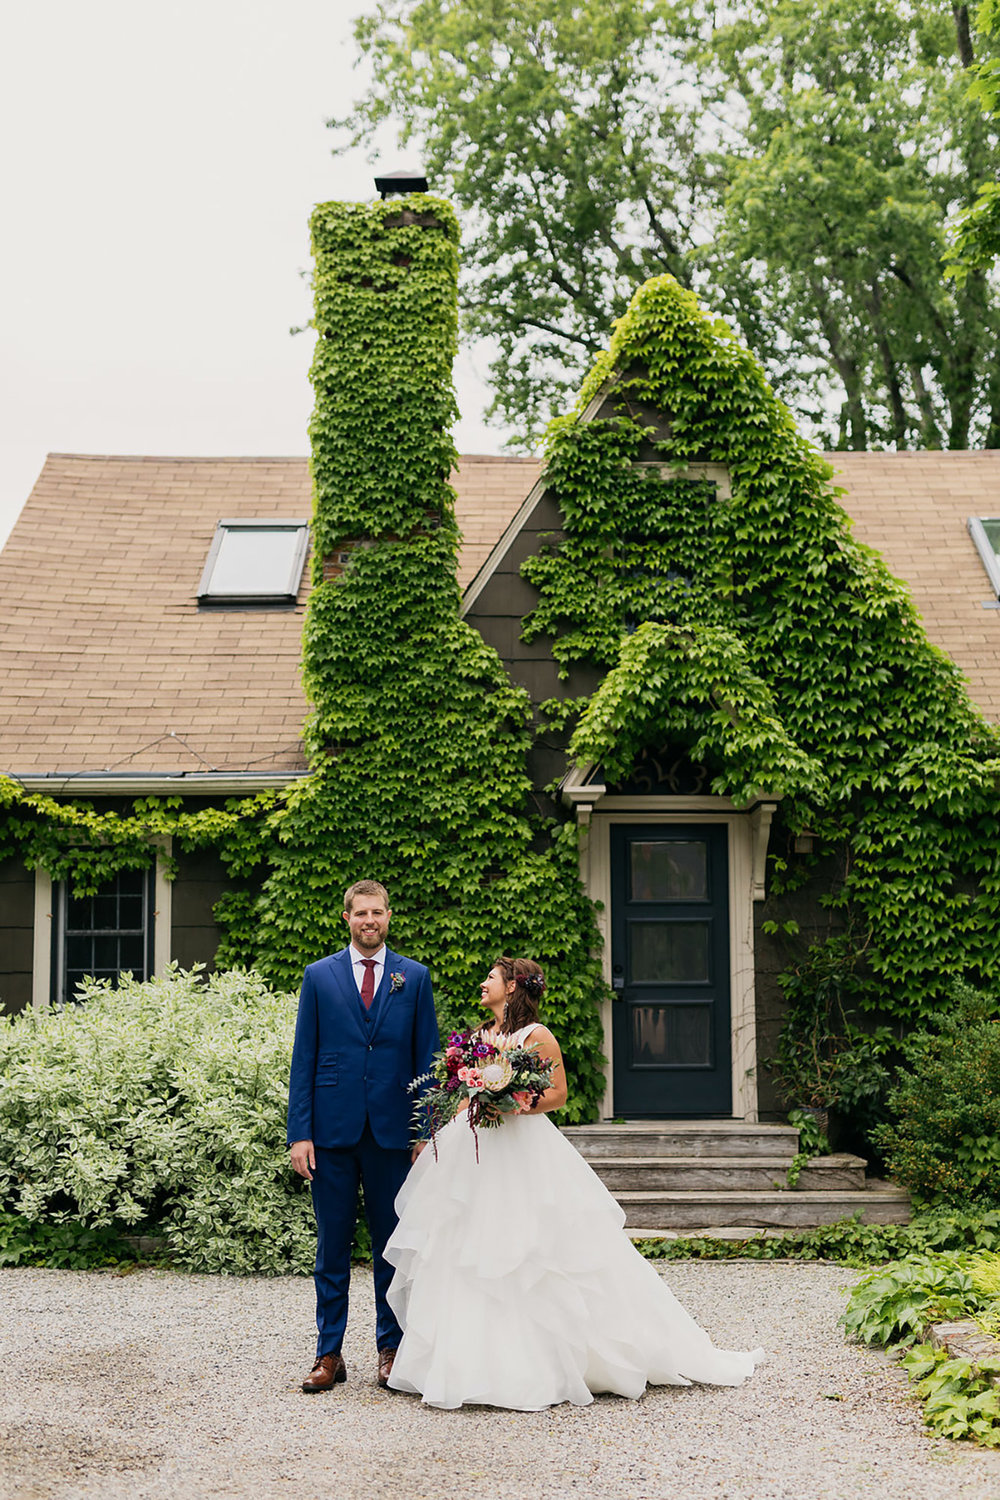 Kurtz-Orchards-Wedding-Niagara-wedding-Vineyard-Bride-Photography-by-Kayla-Rocca-007.JPG